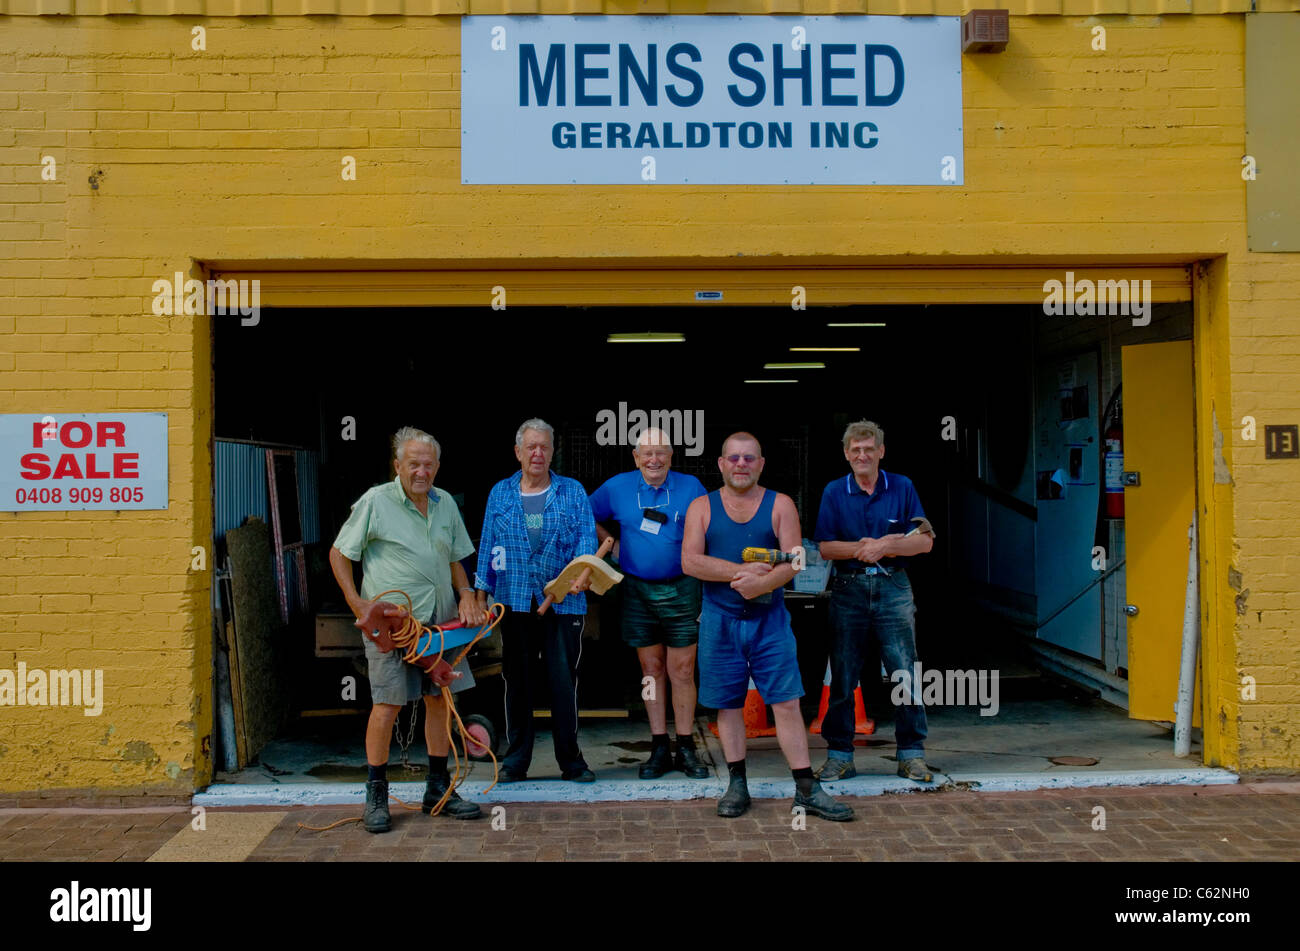 Members of the Mens Shed work group Geraldton Western Australia - Stock Image